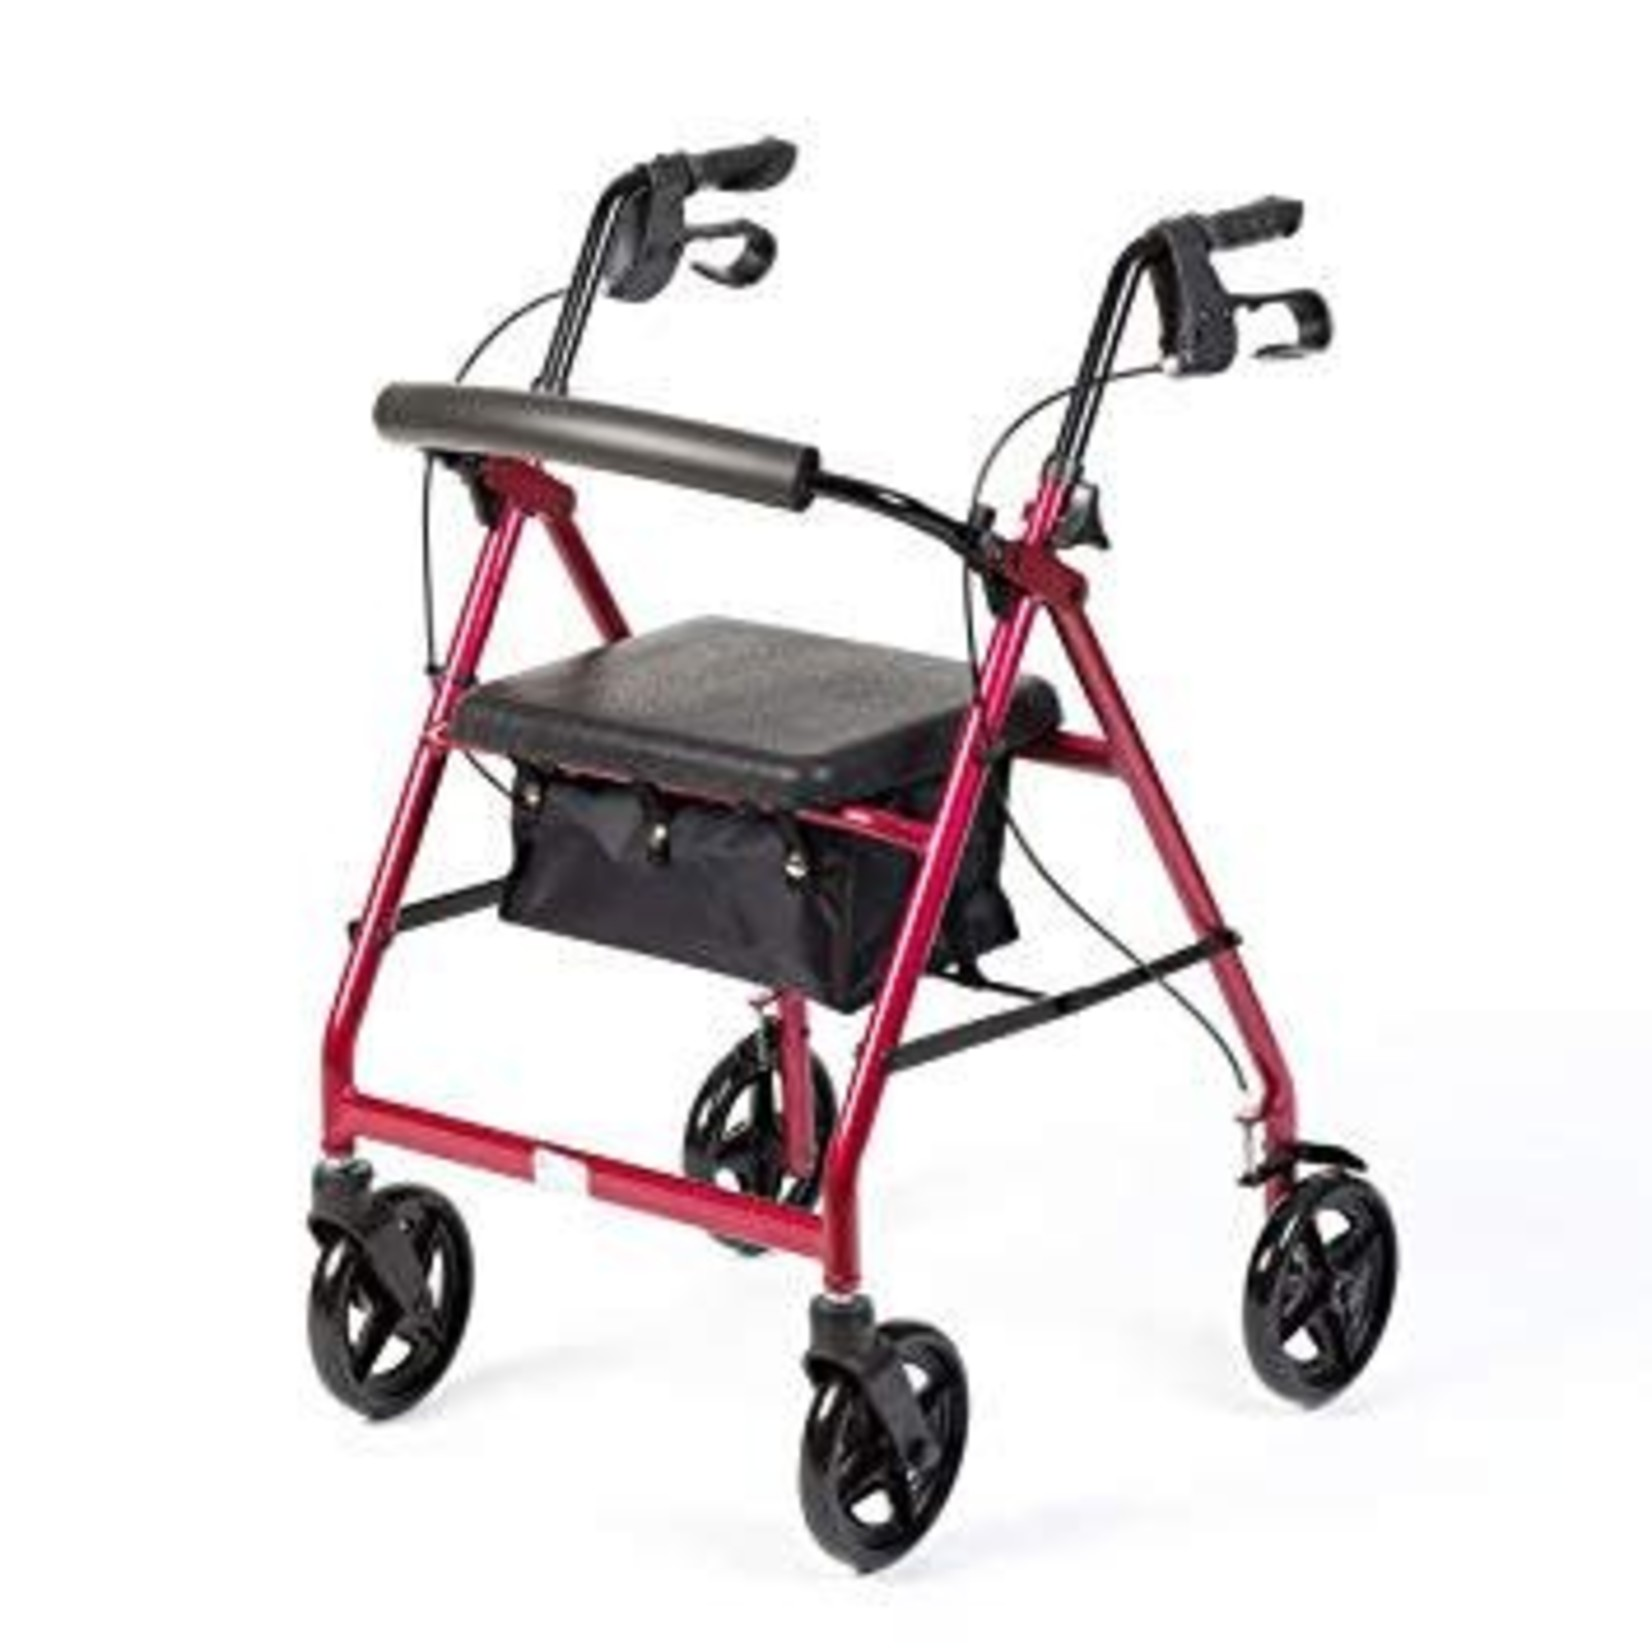 4 Wheel Walker - Rental Reservation in Eastern Palm Beach County